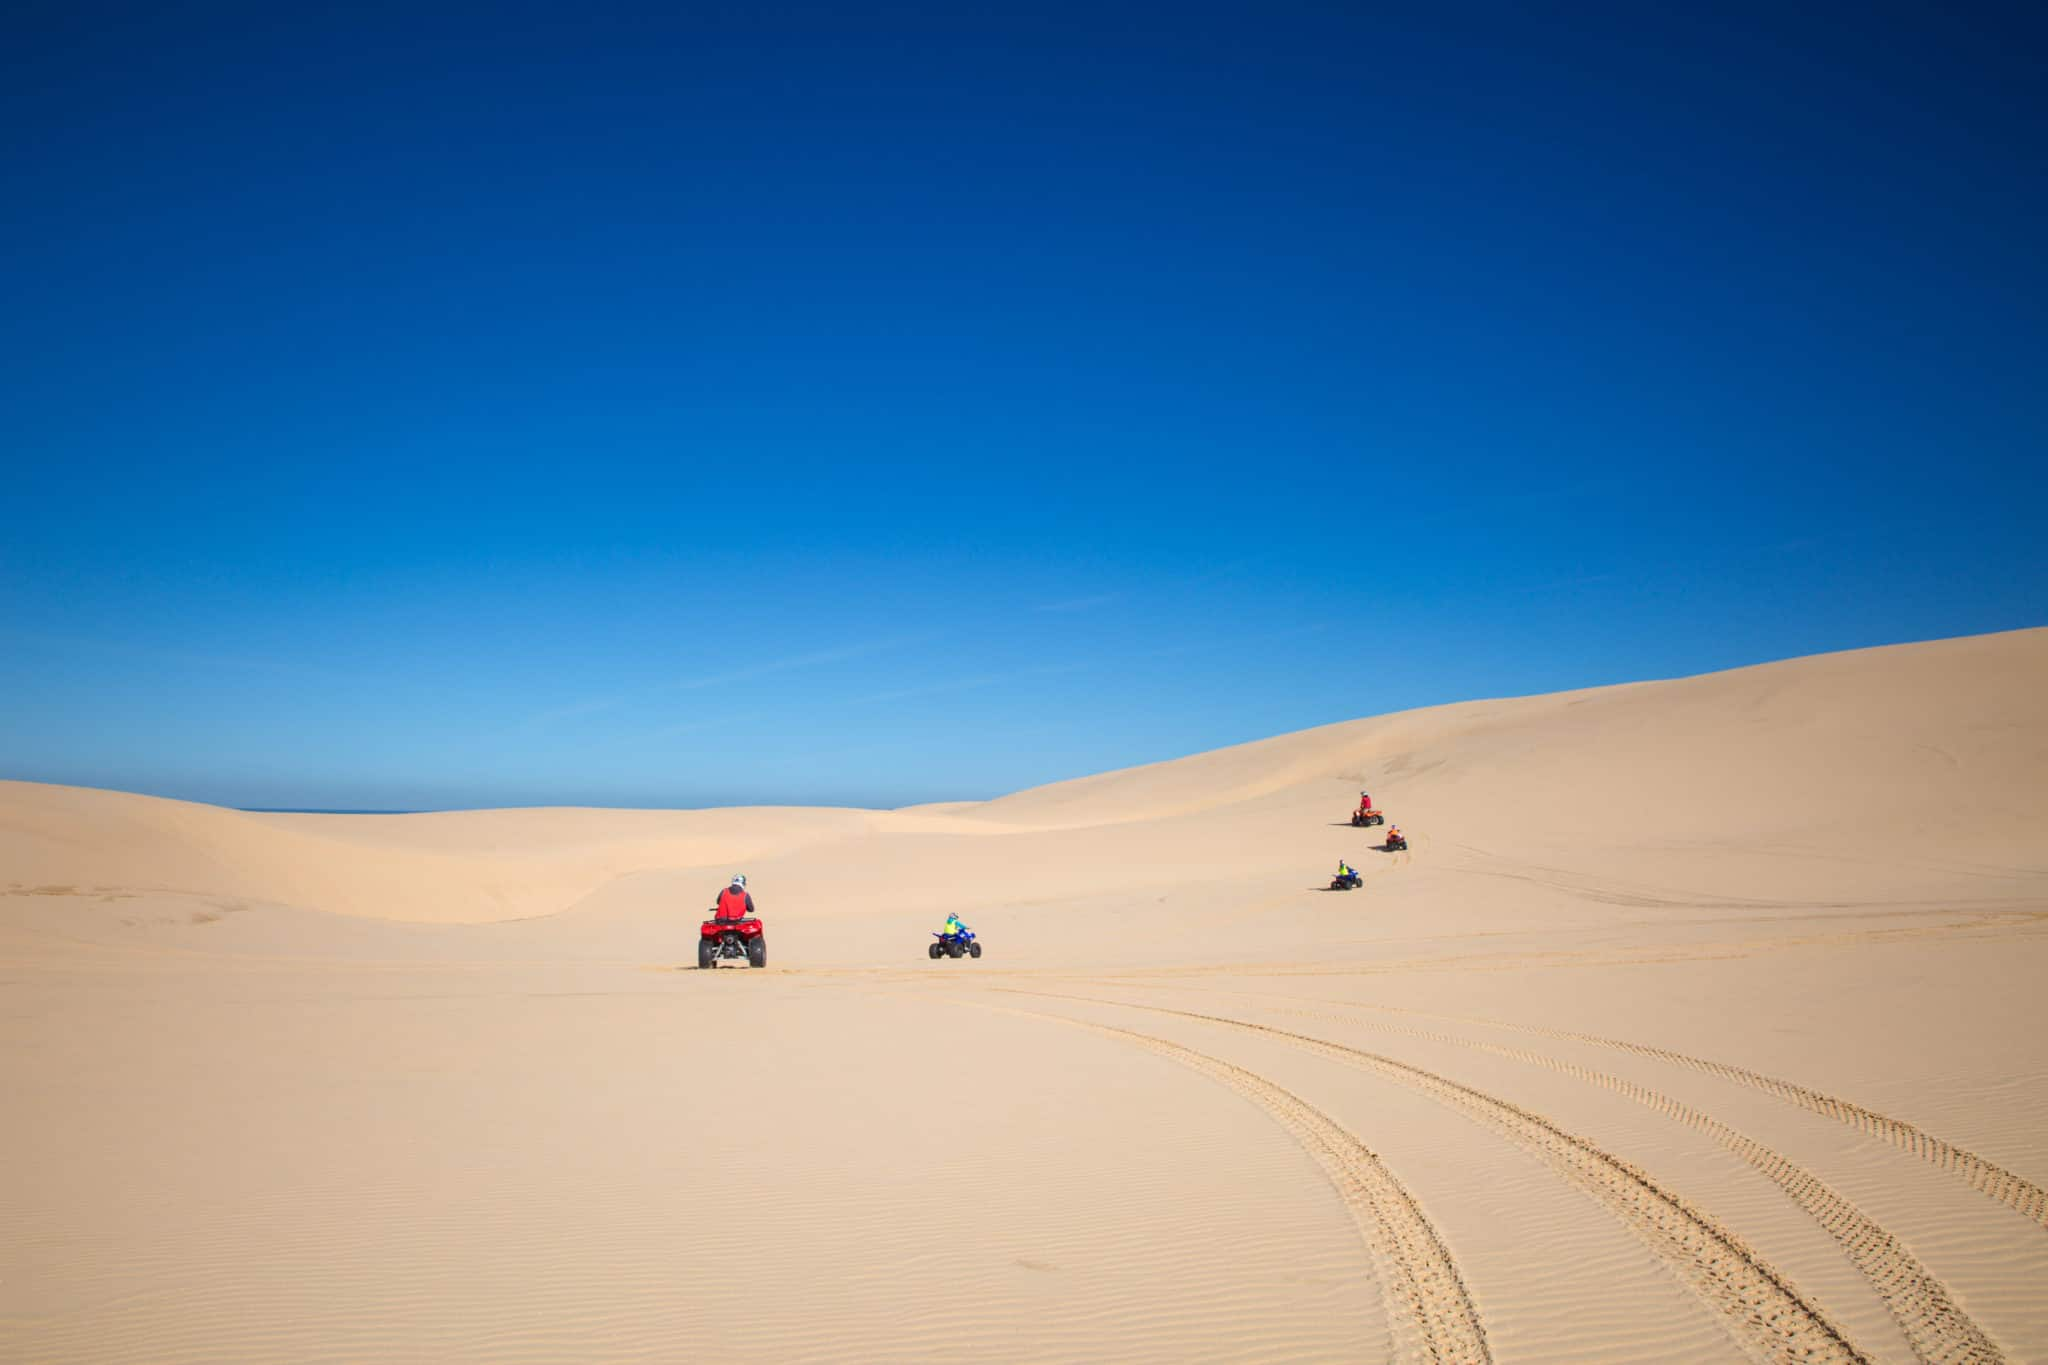 Travel With Meraki - Sand Dune Adventures - Quad Biking - Stockton Beach - Newcastle - Australia